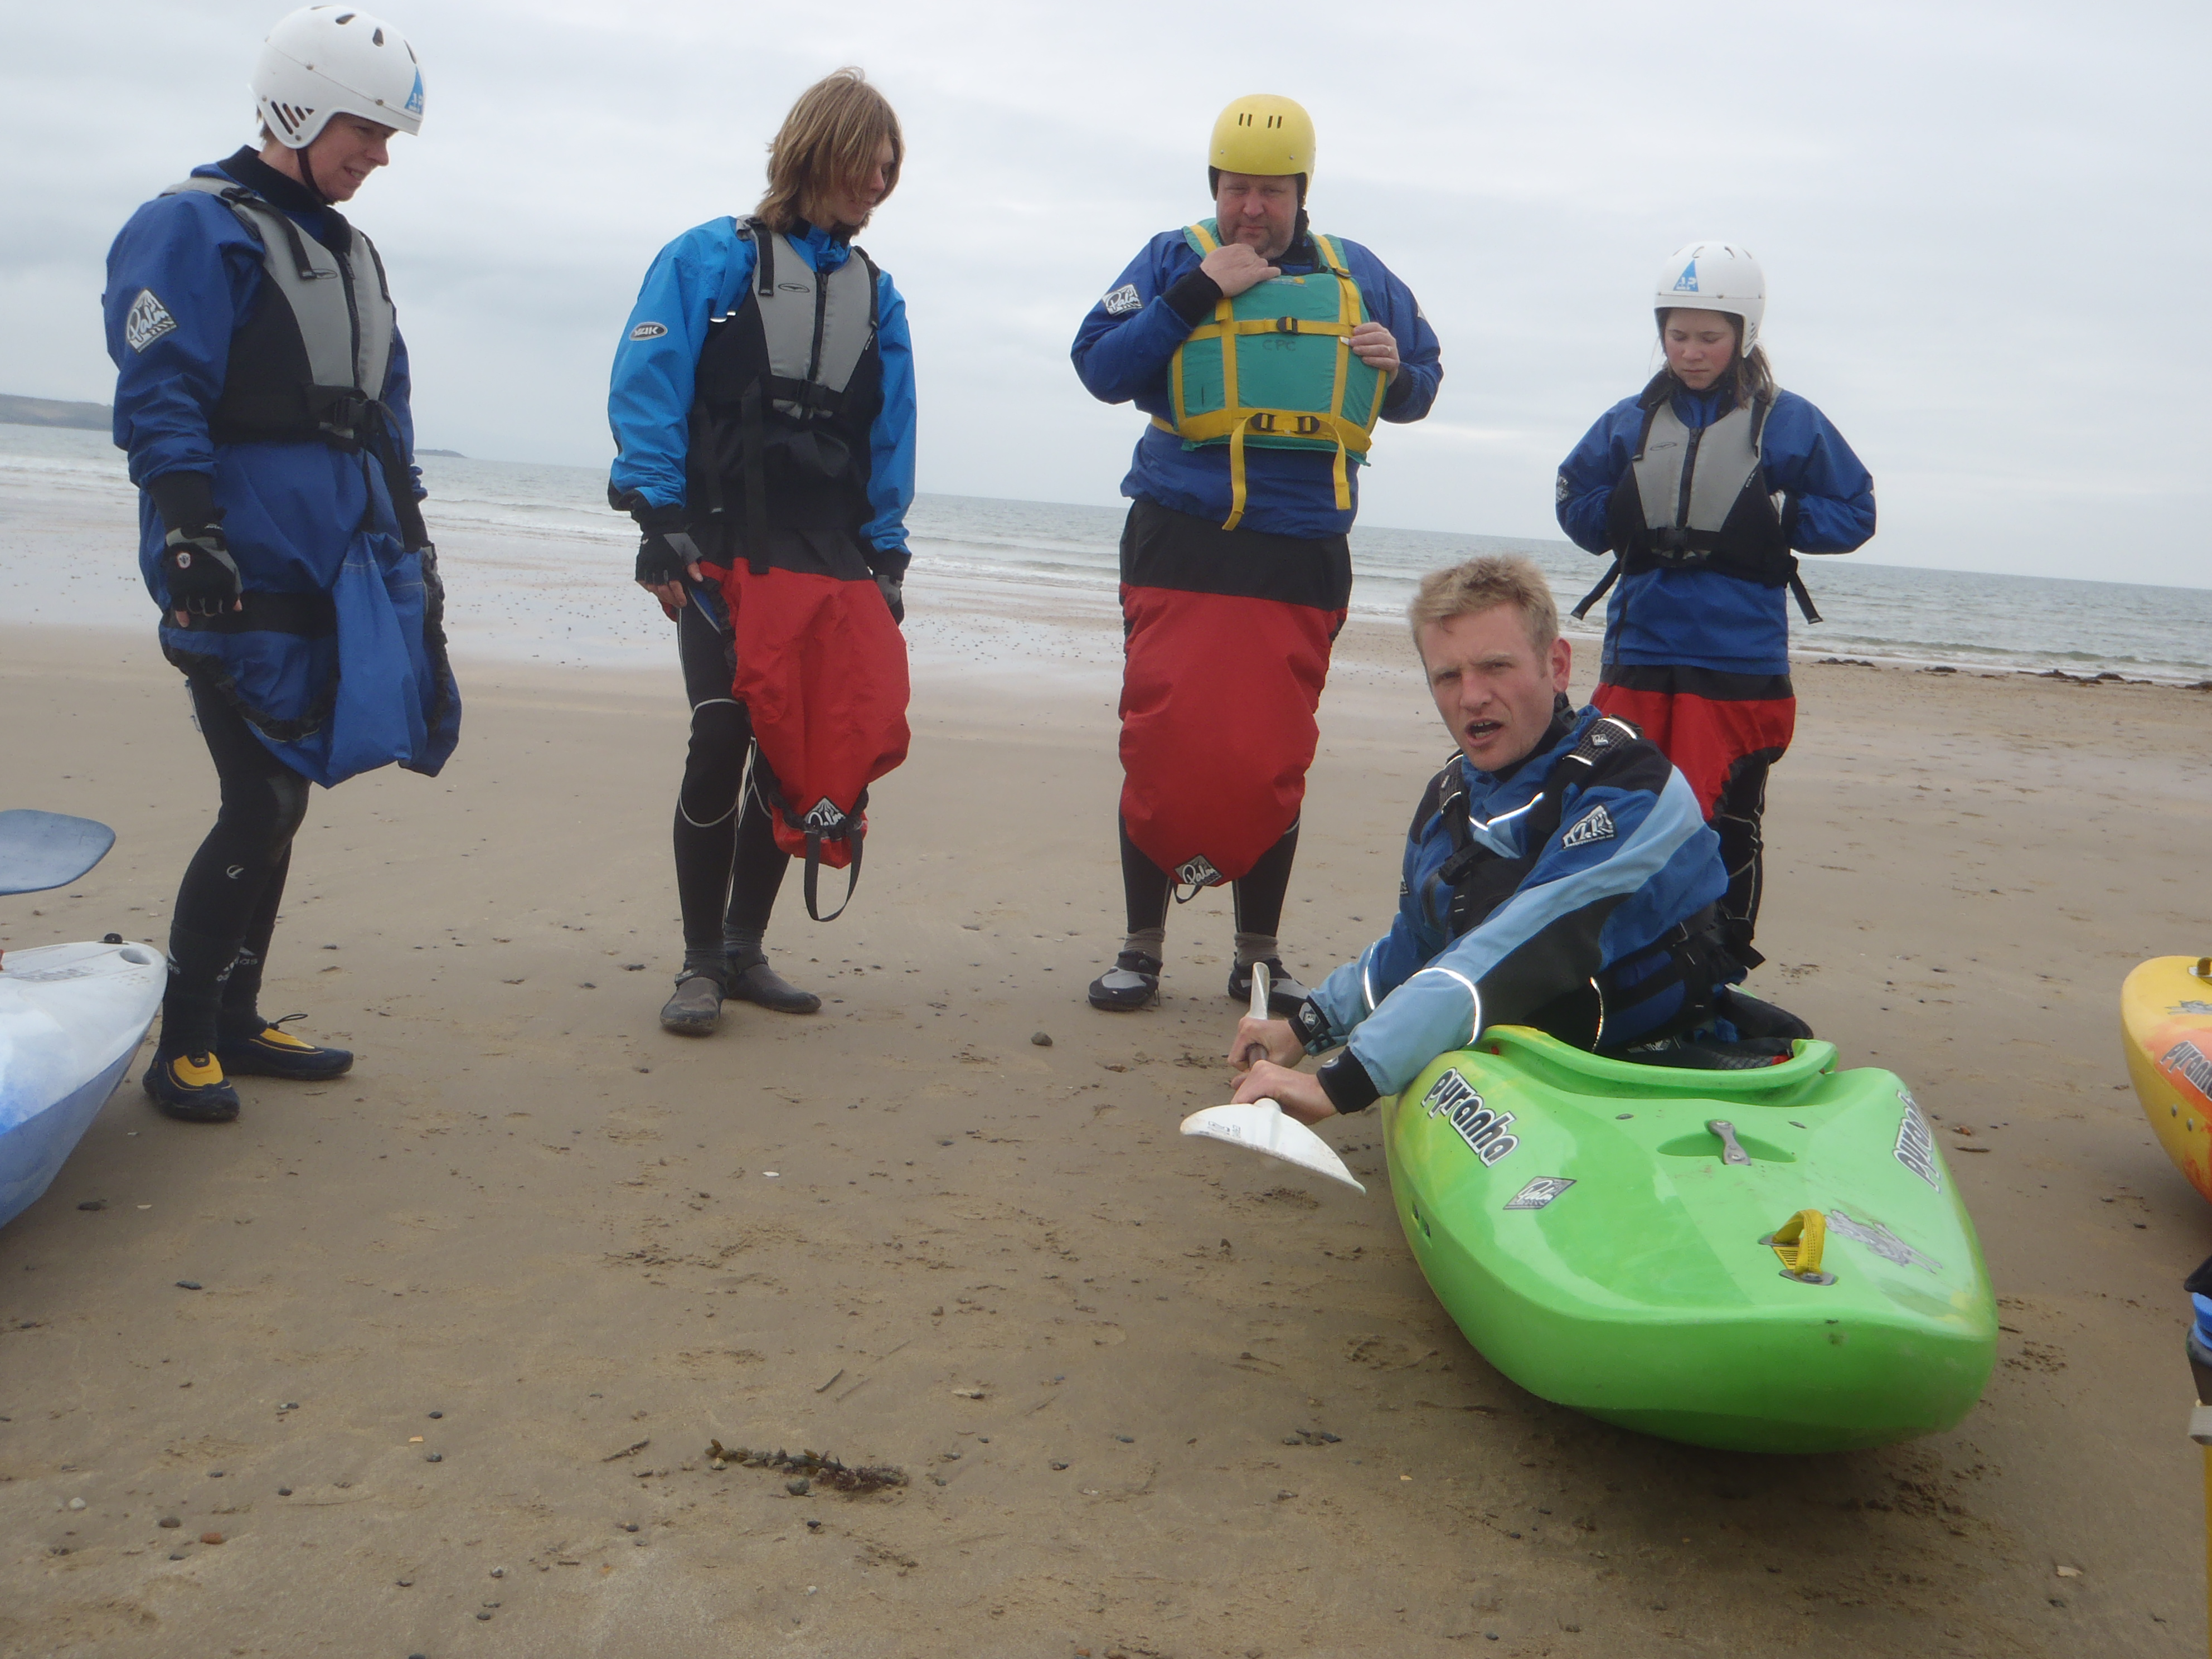 Learning to Surf a kayak